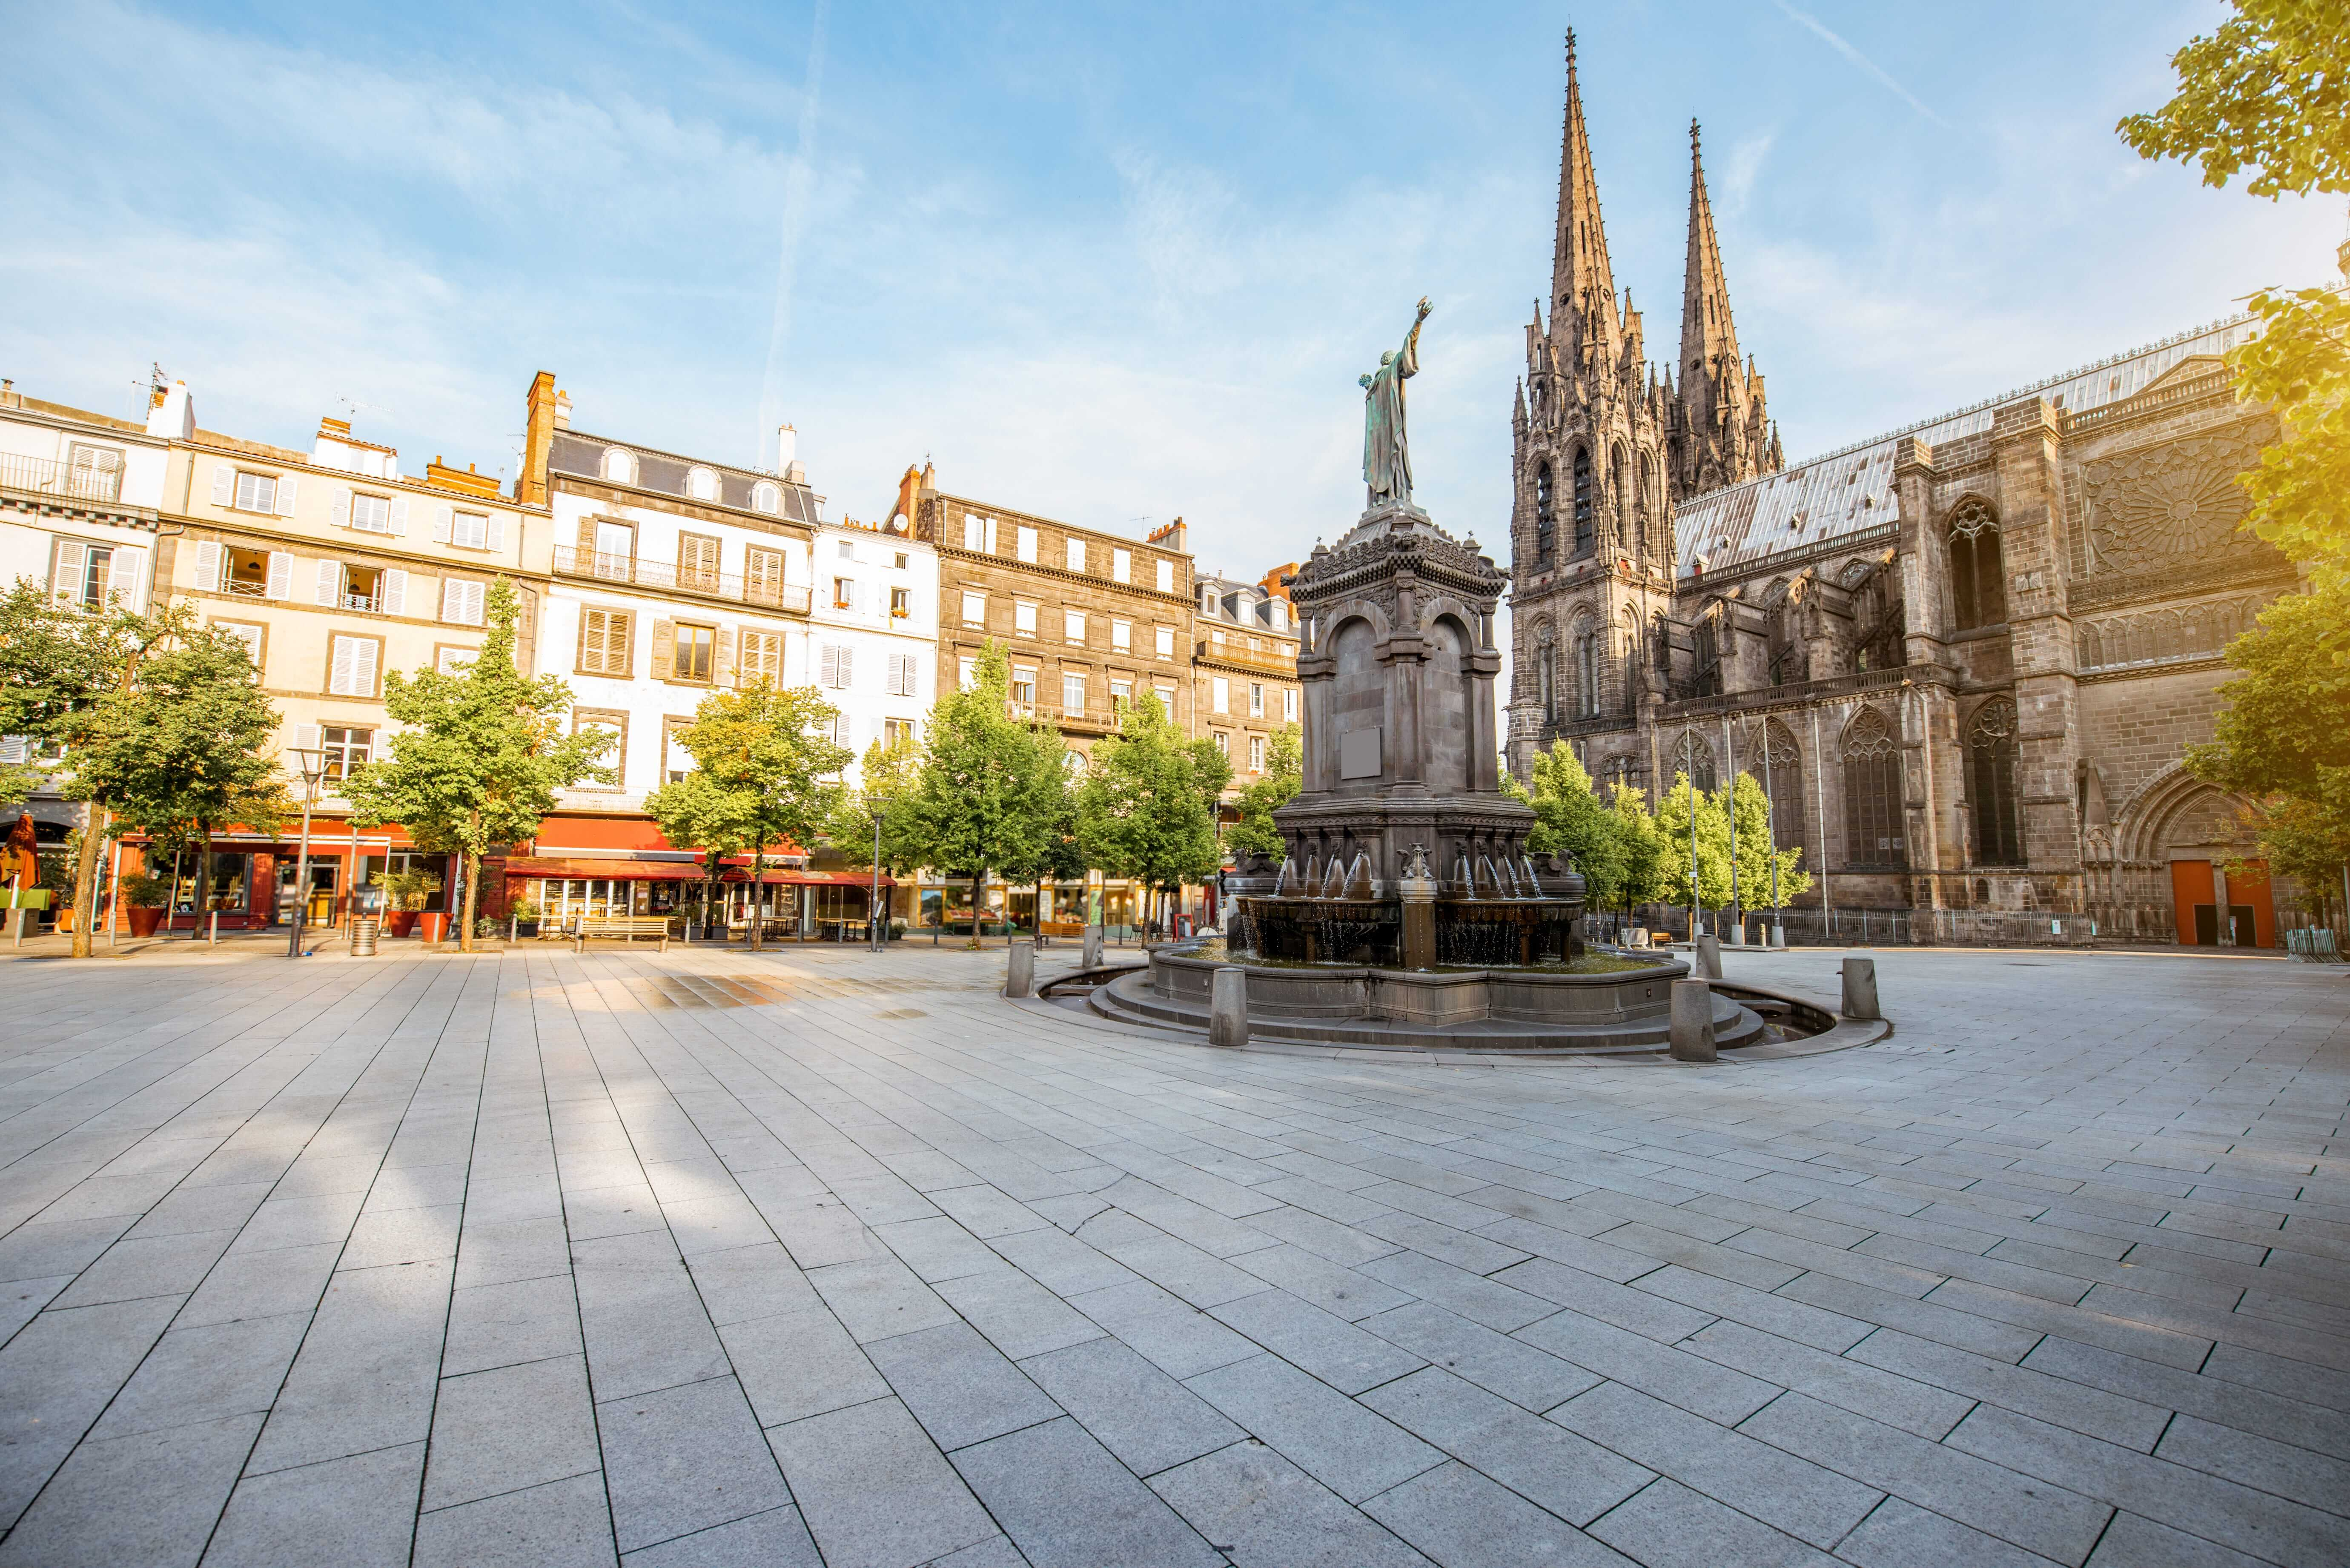 Orléans_France_Morning view on the Victory square with monument and cathedral in Clermont-Ferrand city in France_170759950-min (1)